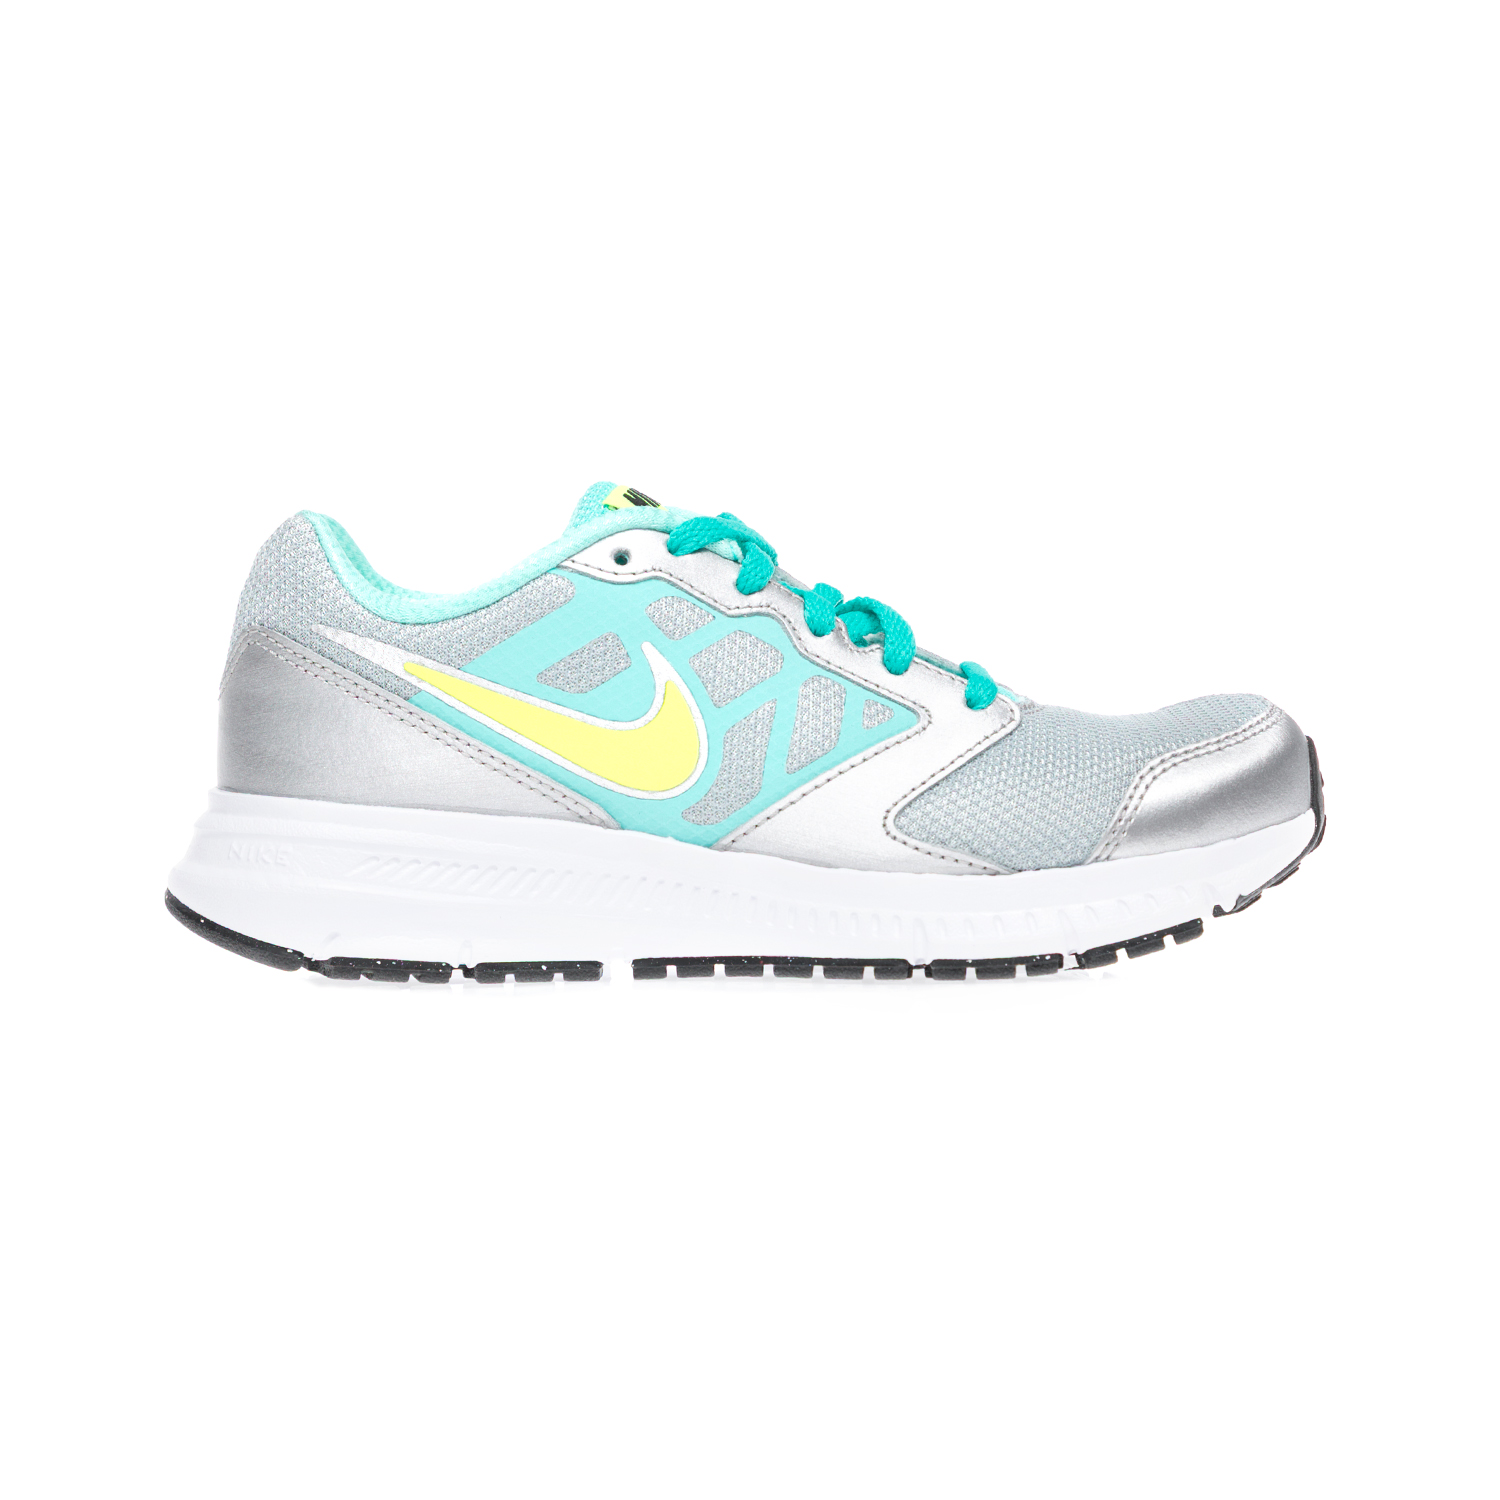 NIKE - Παδικά παπούτσια NIKE DOWNSHIFTER 6 (GS/PS) γκρι-ασημί παιδικά girls παπούτσια αθλητικά